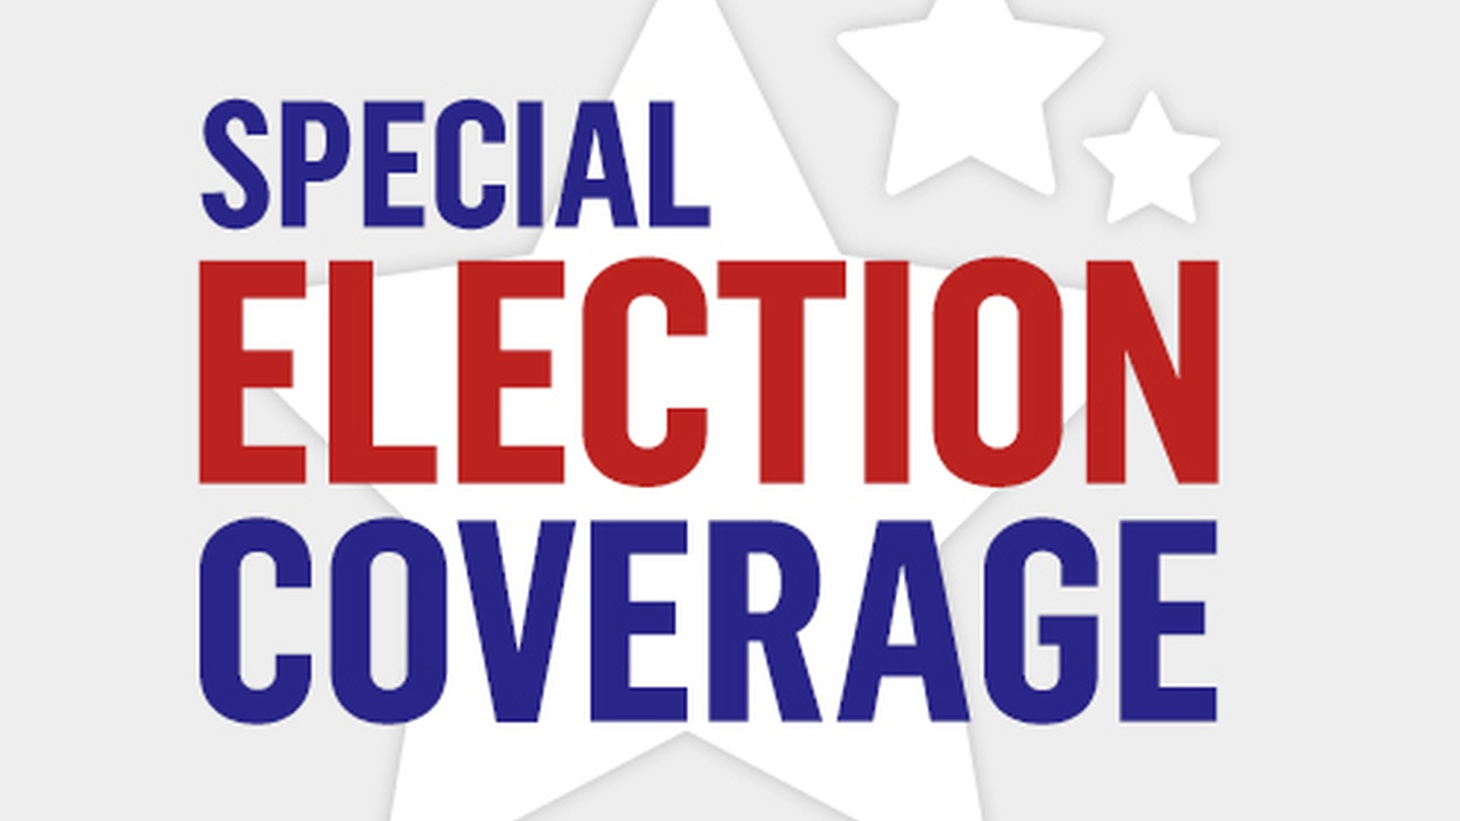 NPR's Special Coverage of the Connecticut, Delaware, Maryland, Pennsylvania, Connecticut and Rhode Island primaries will air Tuesday, April 26, from5-7pm PDT.